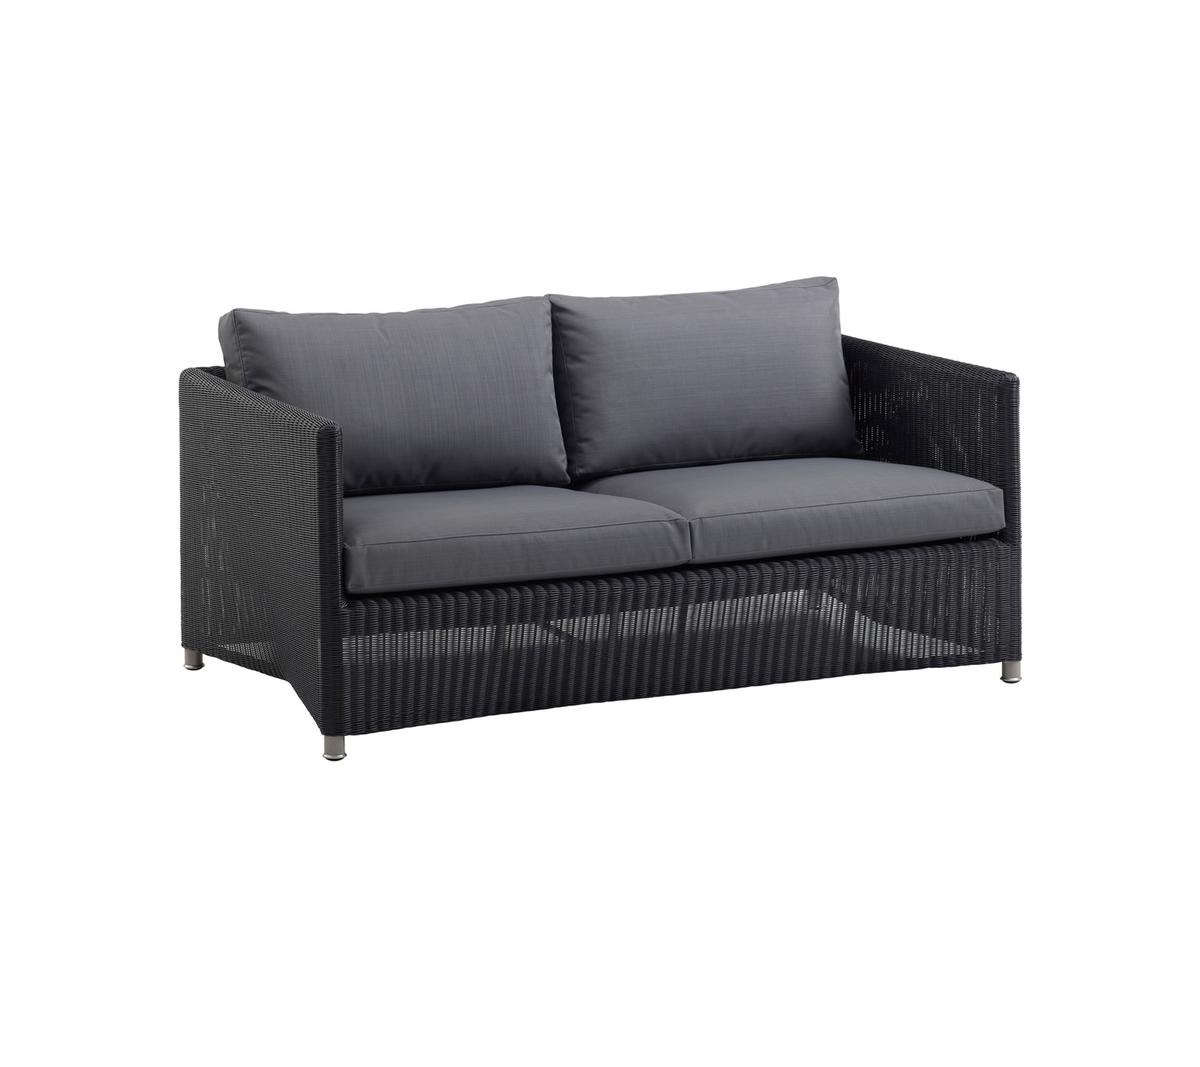 Diamond 2-seater sofa